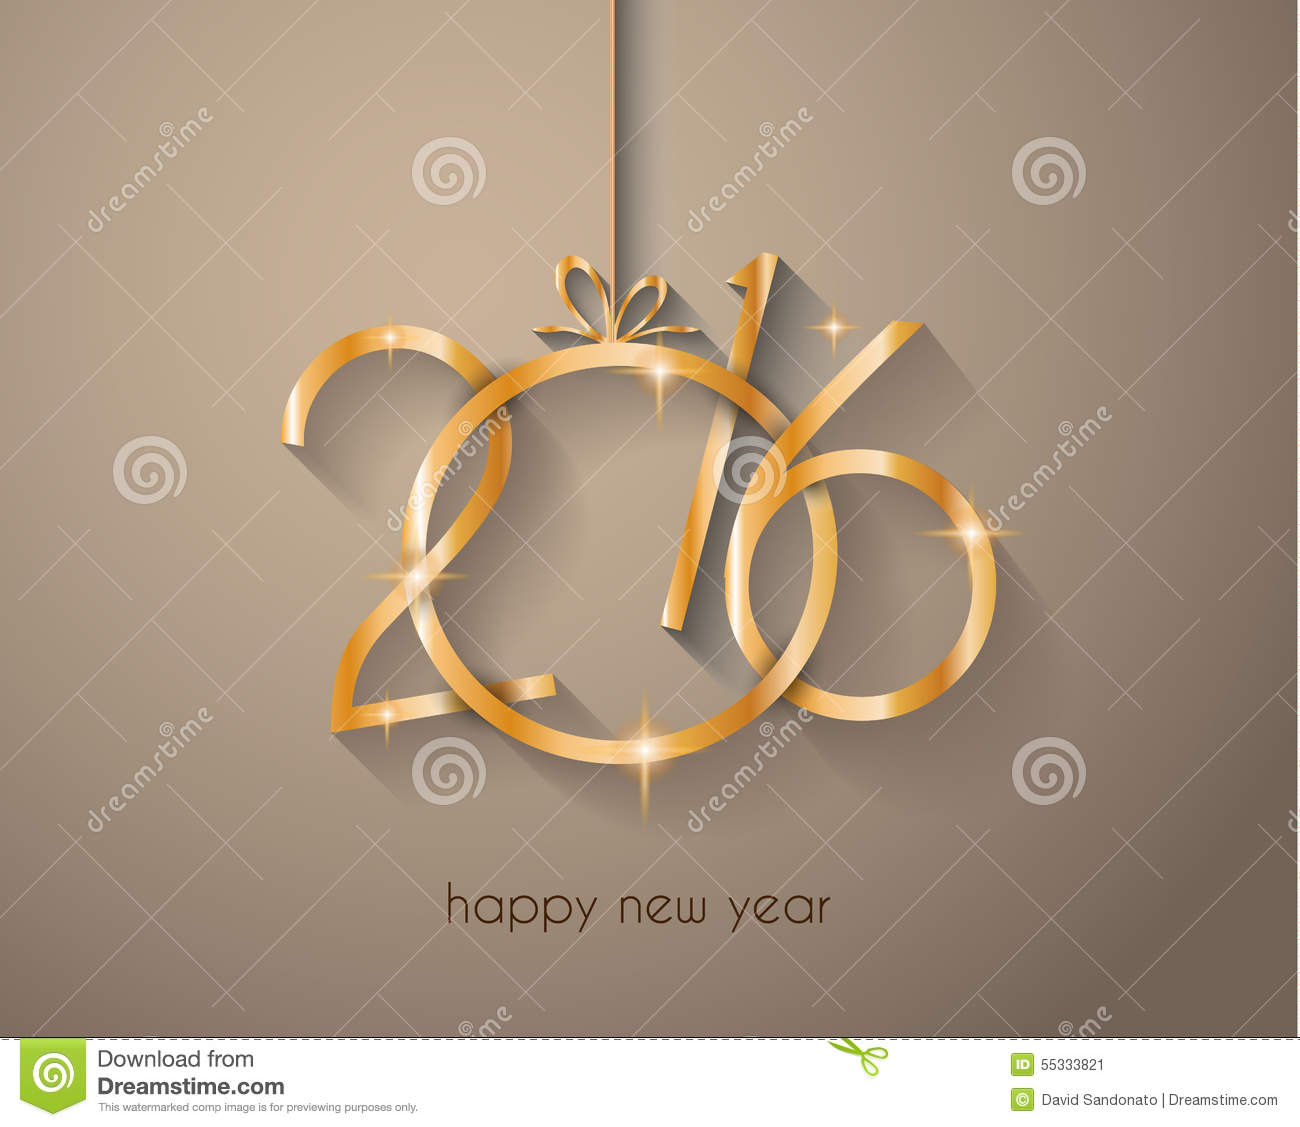 2016 new year and happy christmas background stock vector 2016 new year and happy christmas background frame flyer stopboris Choice Image